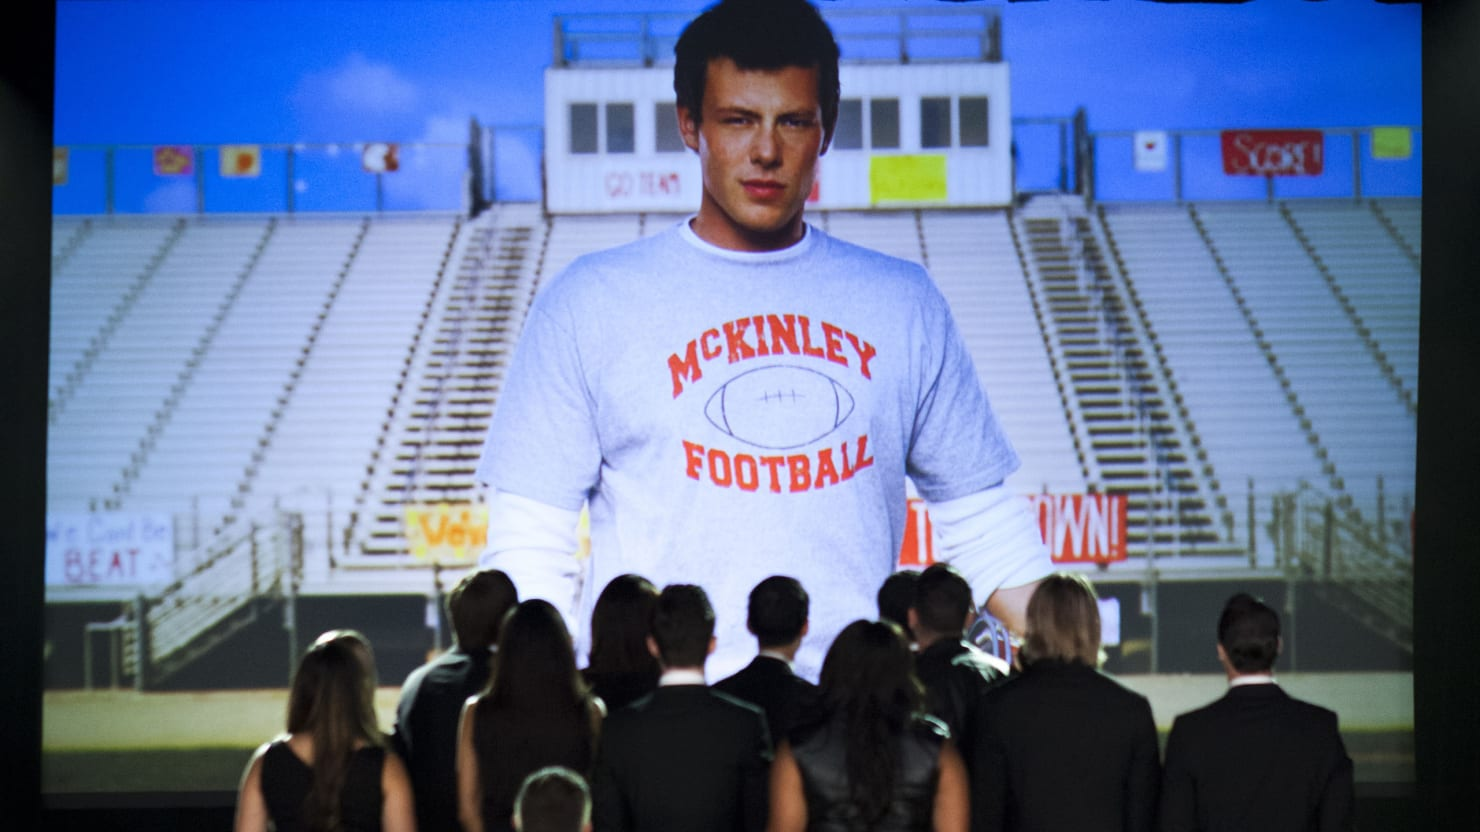 Glee's Cory Monteith Tribute: Cathartic and Could Not Have Been Sadder